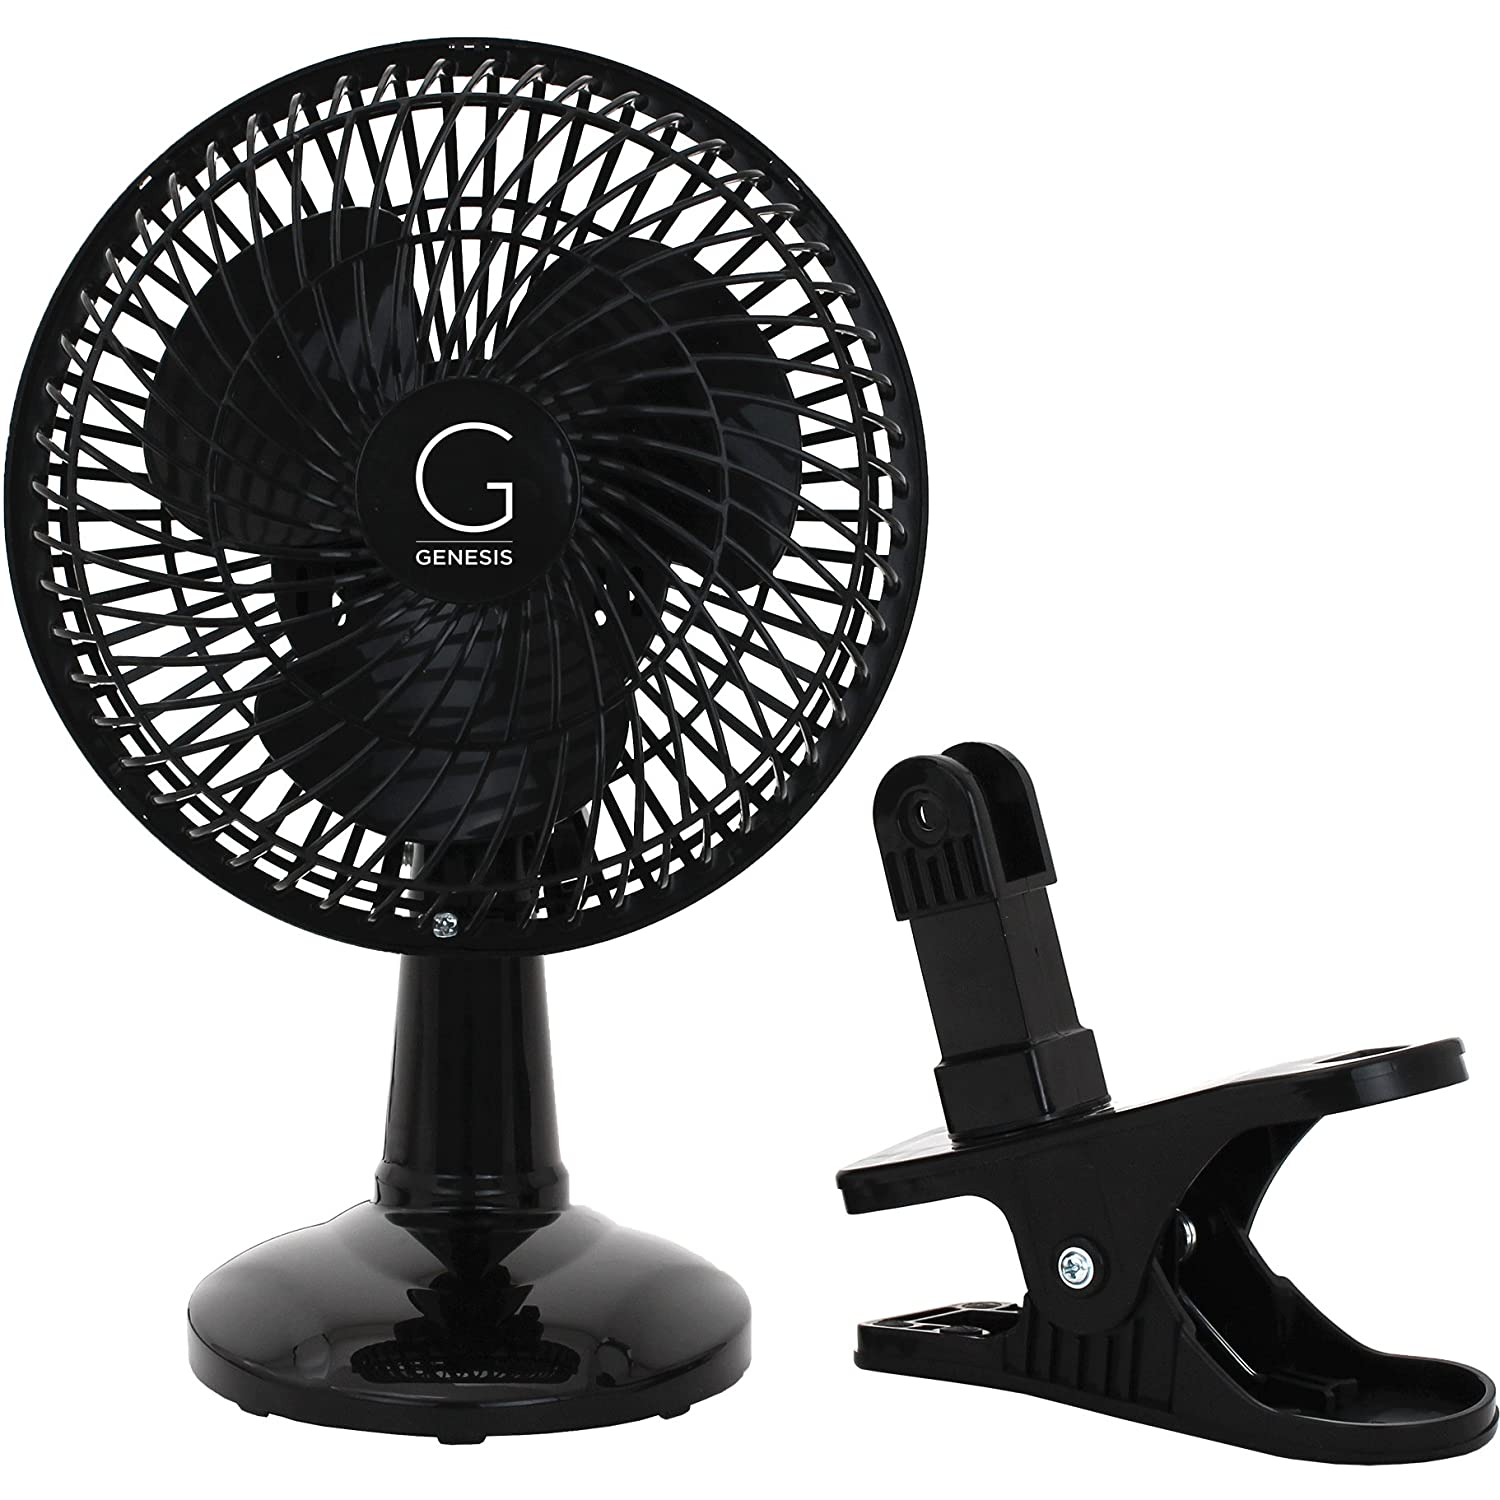 Genesis 6-Inch Clip-On Fan - Convertible Table-Top & Clip Fan, Fully Adjustable Head, Two Quiet Speeds - Ideal For The Home, Office, Dorm, & More - Black